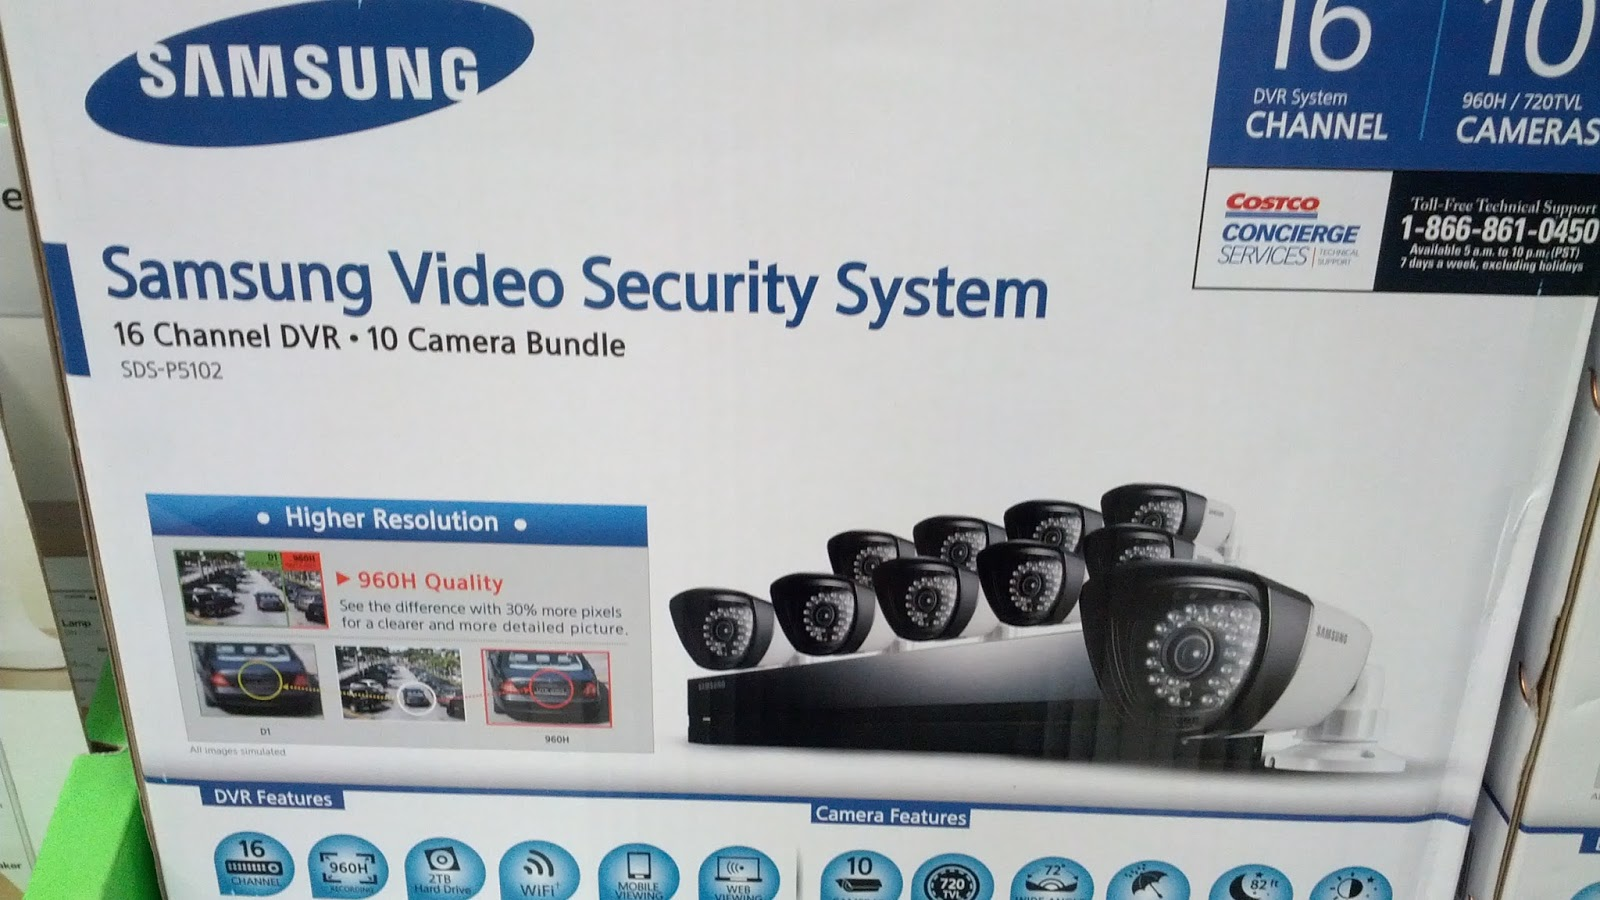 Samsung SDS-P5102 Video Security and Surveillance System | Costco ...